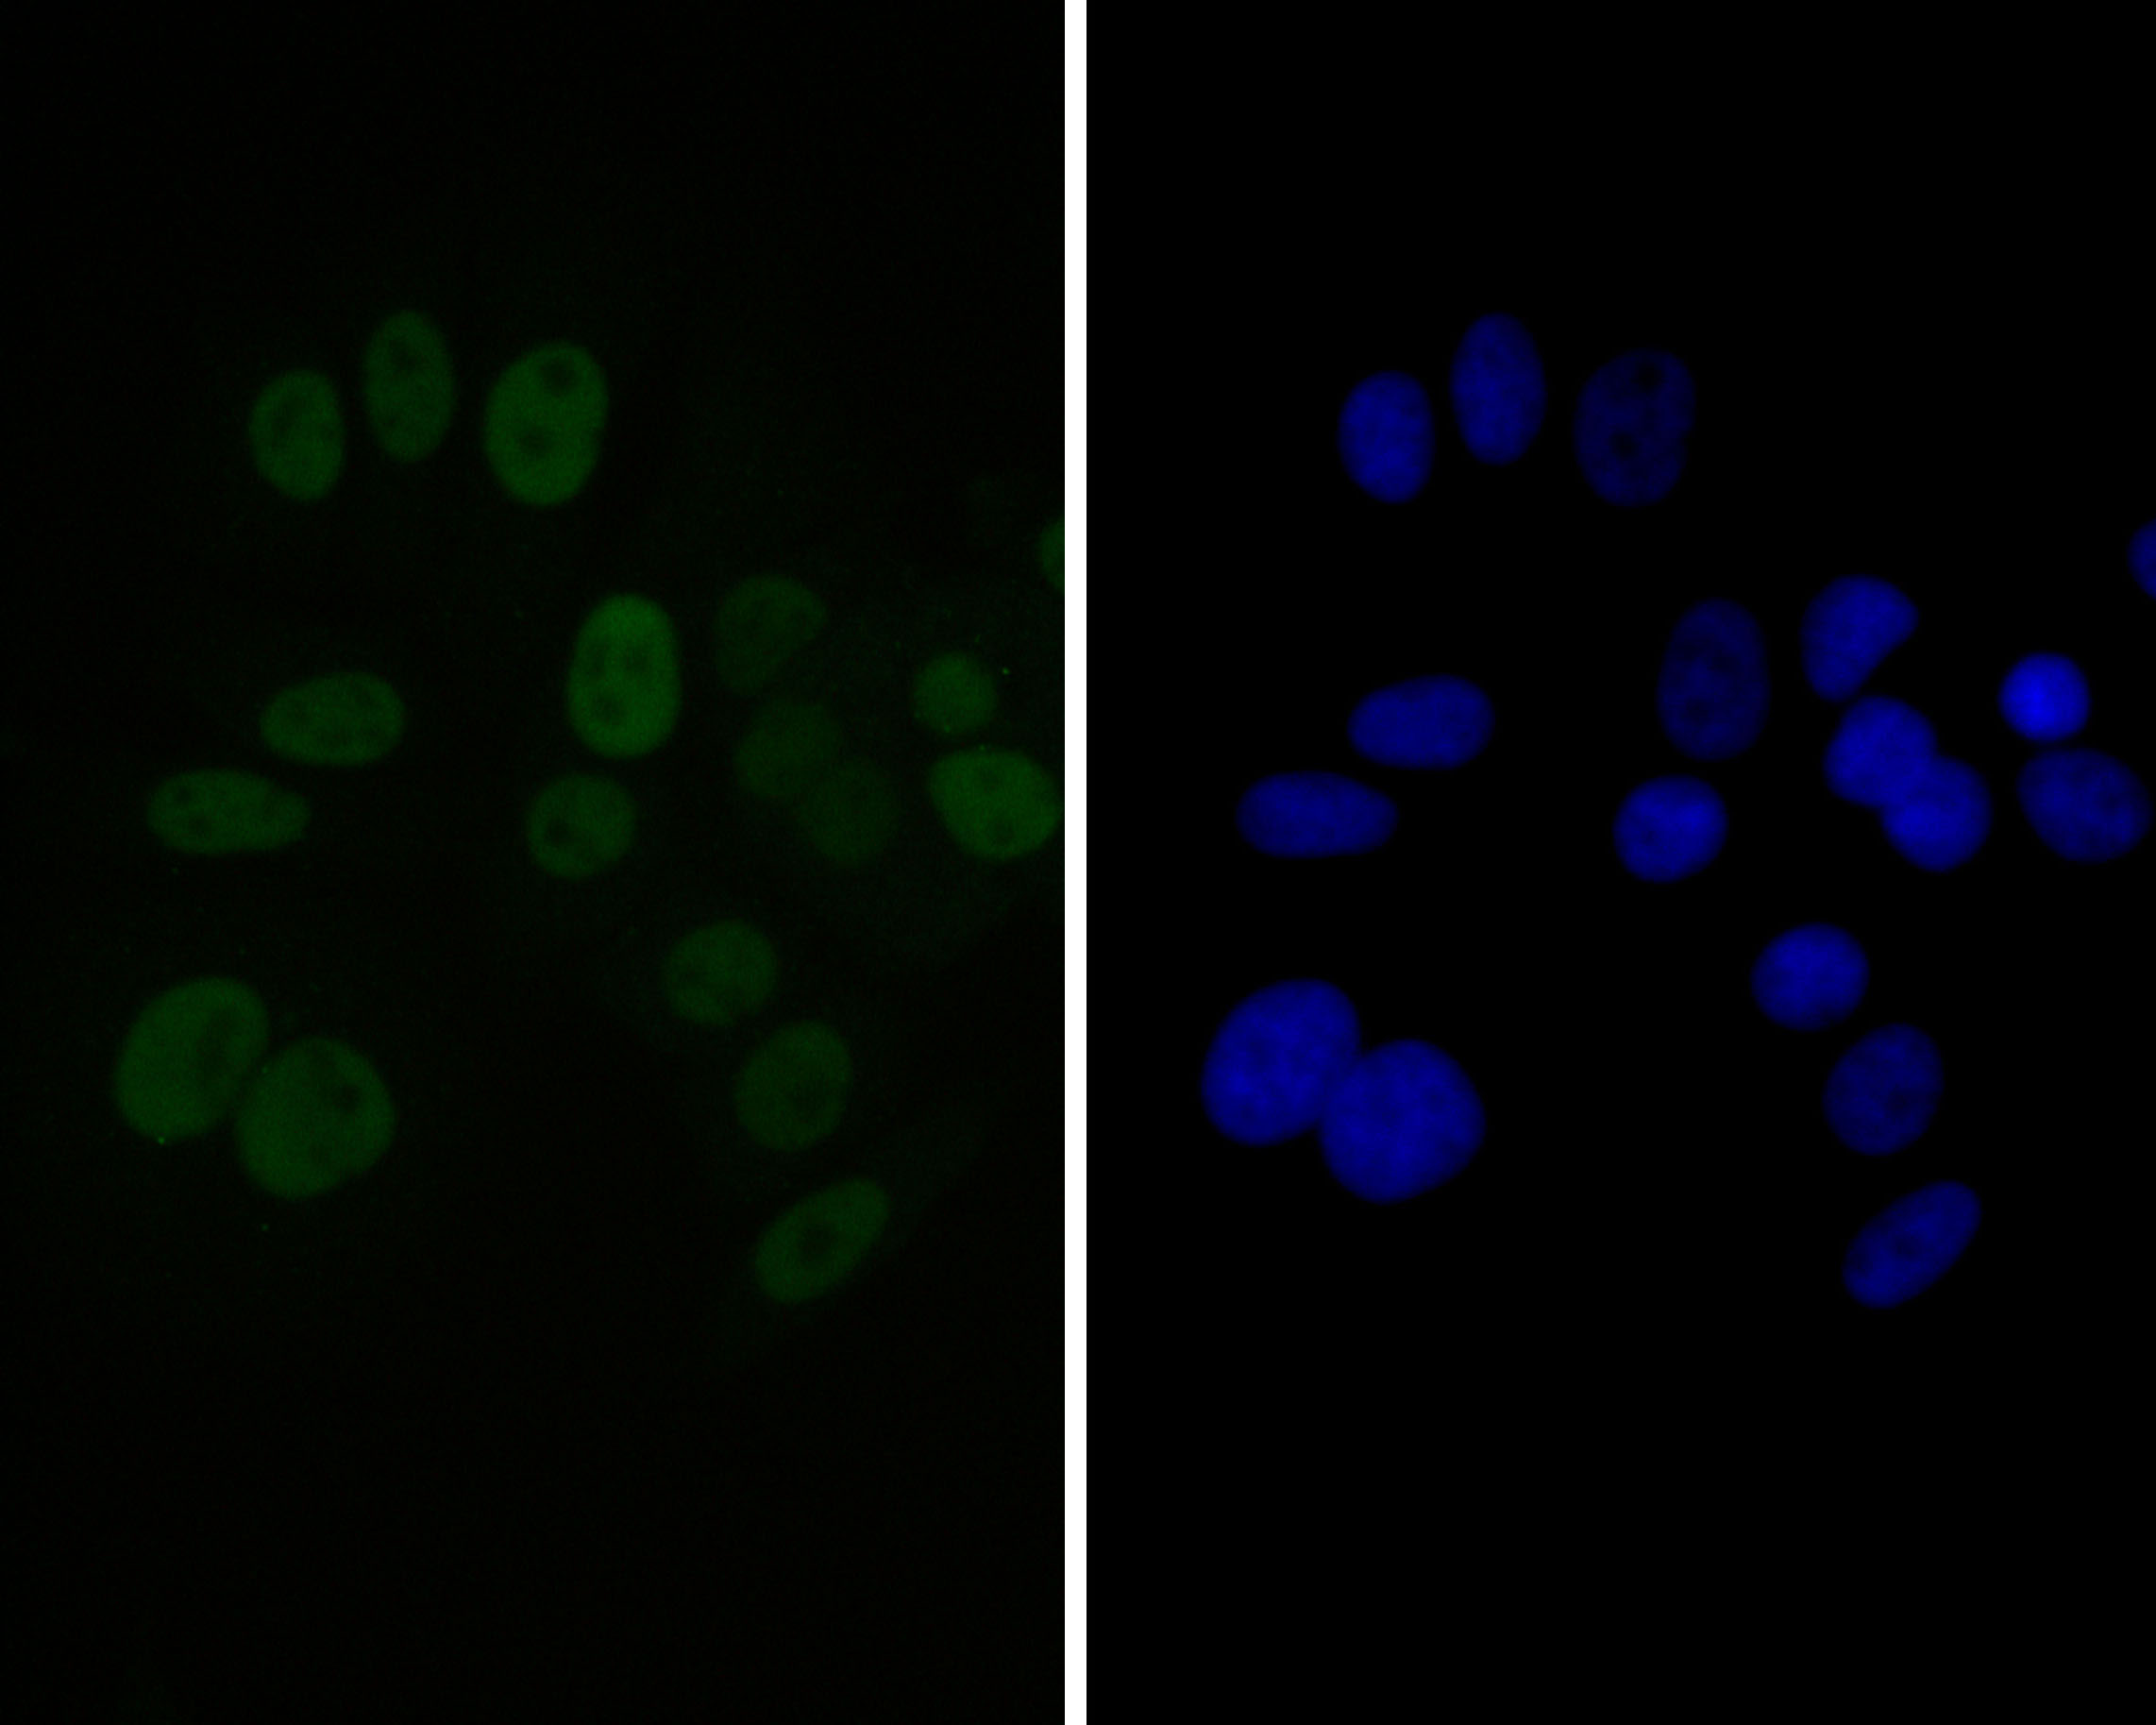 ICC staining of GATA3 in MCF-7 cells (green). Formalin fixed cells were permeabilized with 0.1% Triton X-100 in TBS for 10 minutes at room temperature and blocked with 1% Blocker BSA for 15 minutes at room temperature. Cells were probed with the primary antibody (EM1902-33, 1/100) for 1 hour at room temperature, washed with PBS. Alexa Fluor®488 Goat anti-Mouse IgG was used as the secondary antibody at 1/100 dilution. The nuclear counter stain is DAPI (blue).